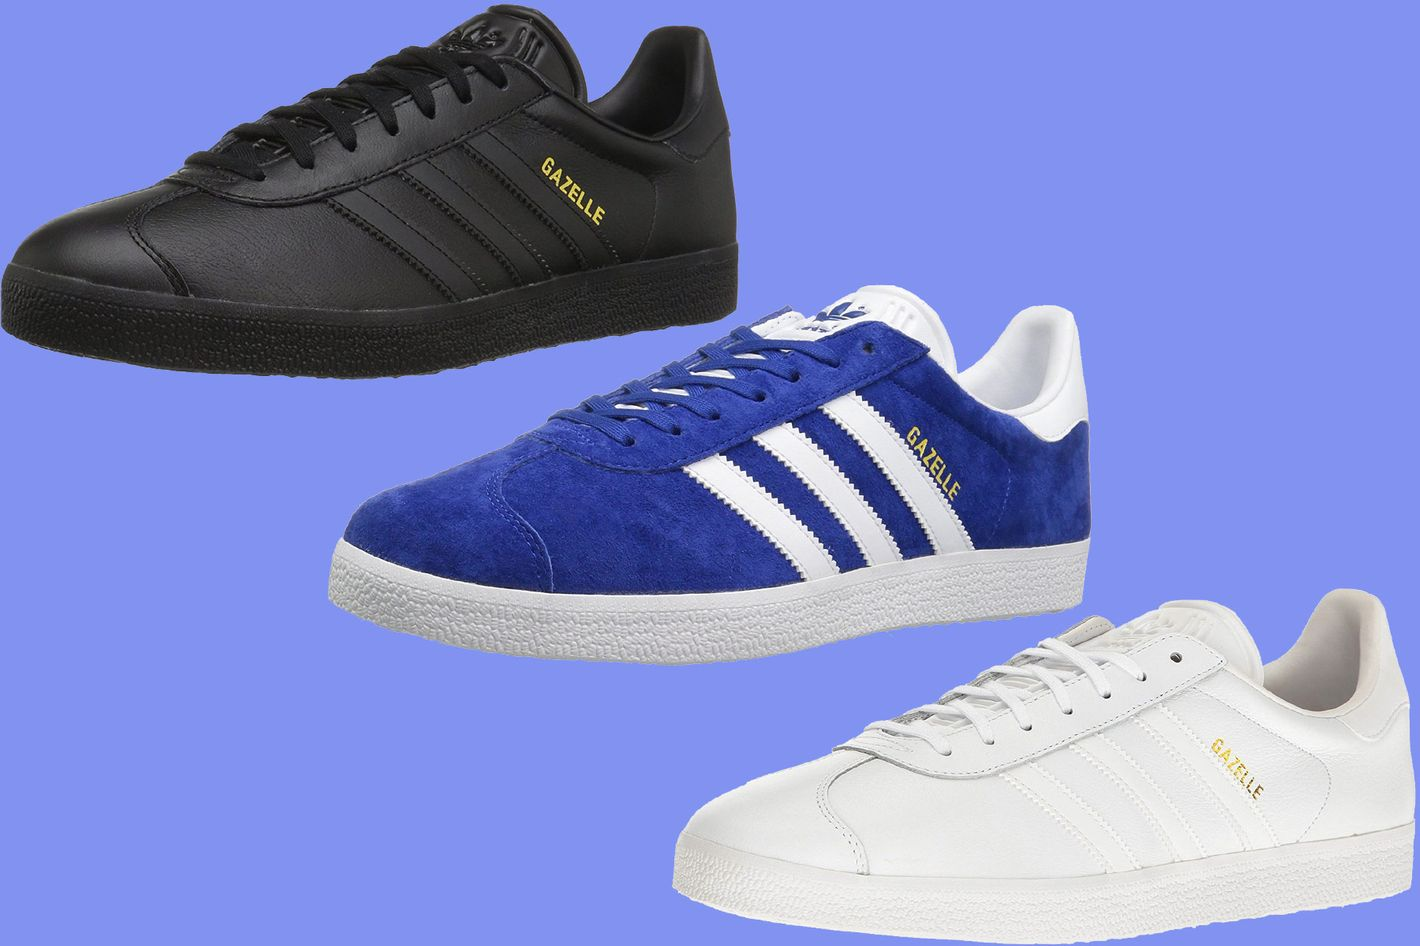 best website 99b1f 01d2b Adidas Sneakers - Adidas Gazelles